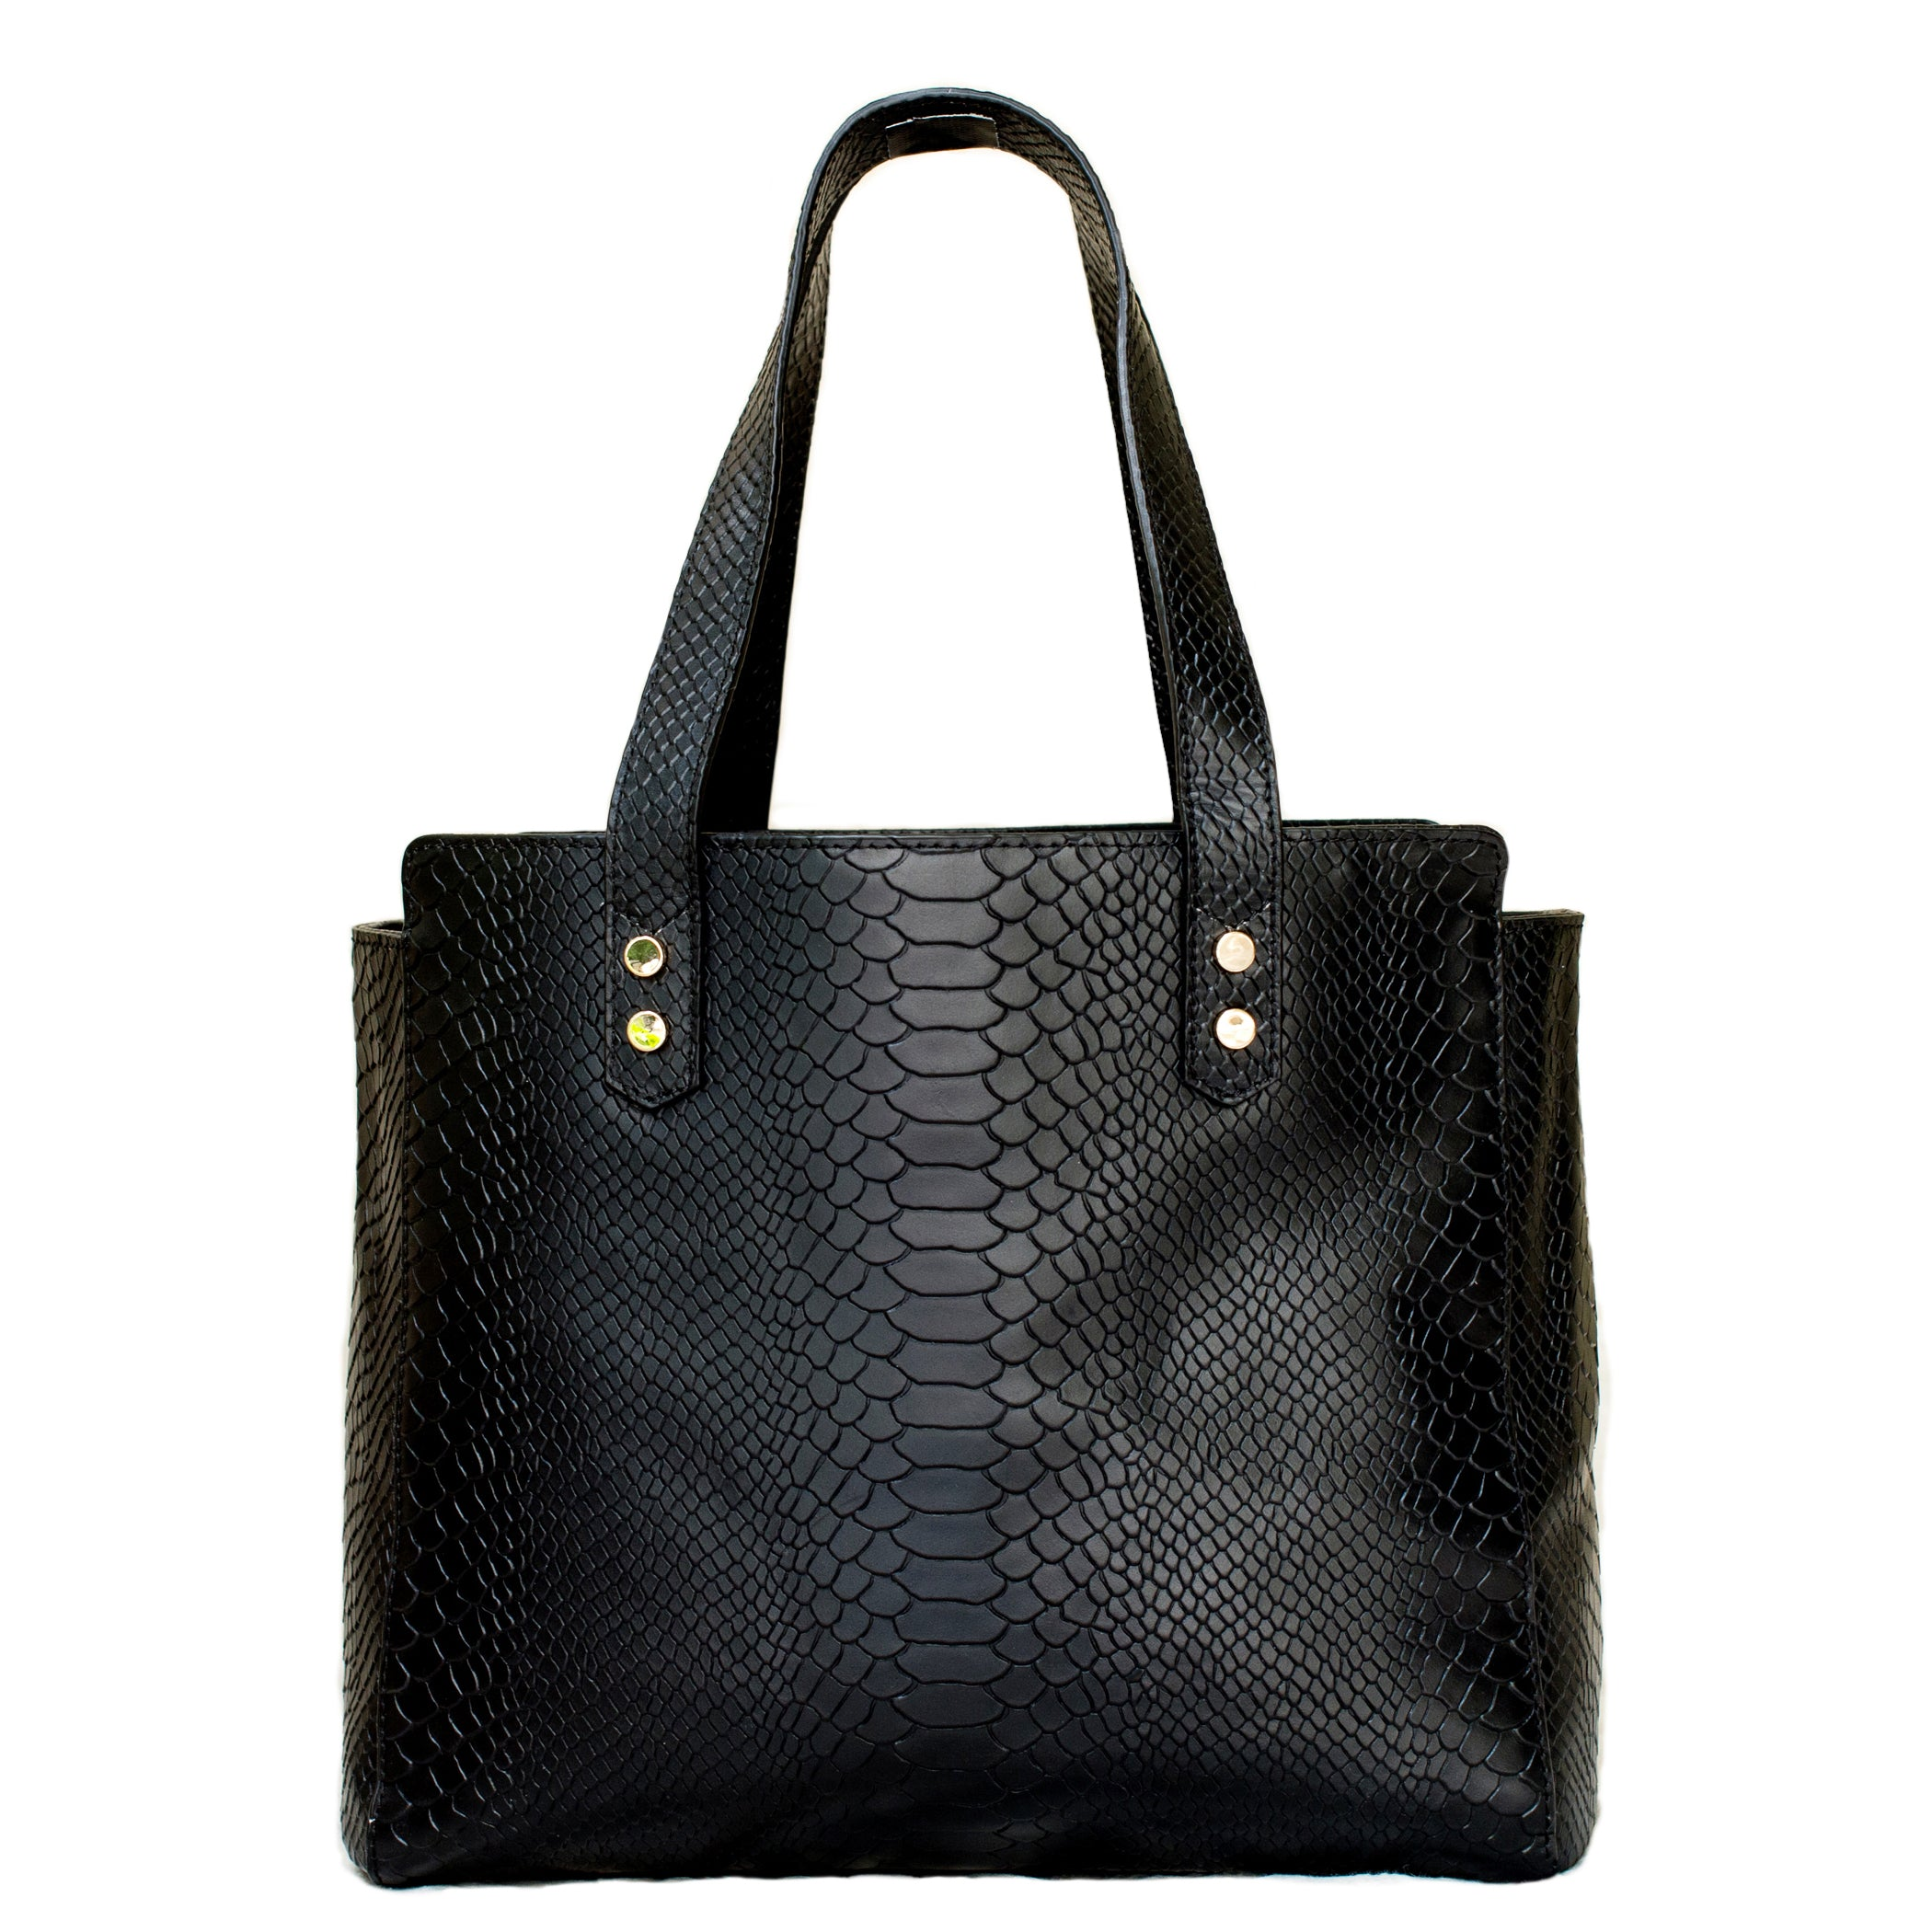 Python Embossed Leather Tote in Black - Elizabeth Ackerman New York